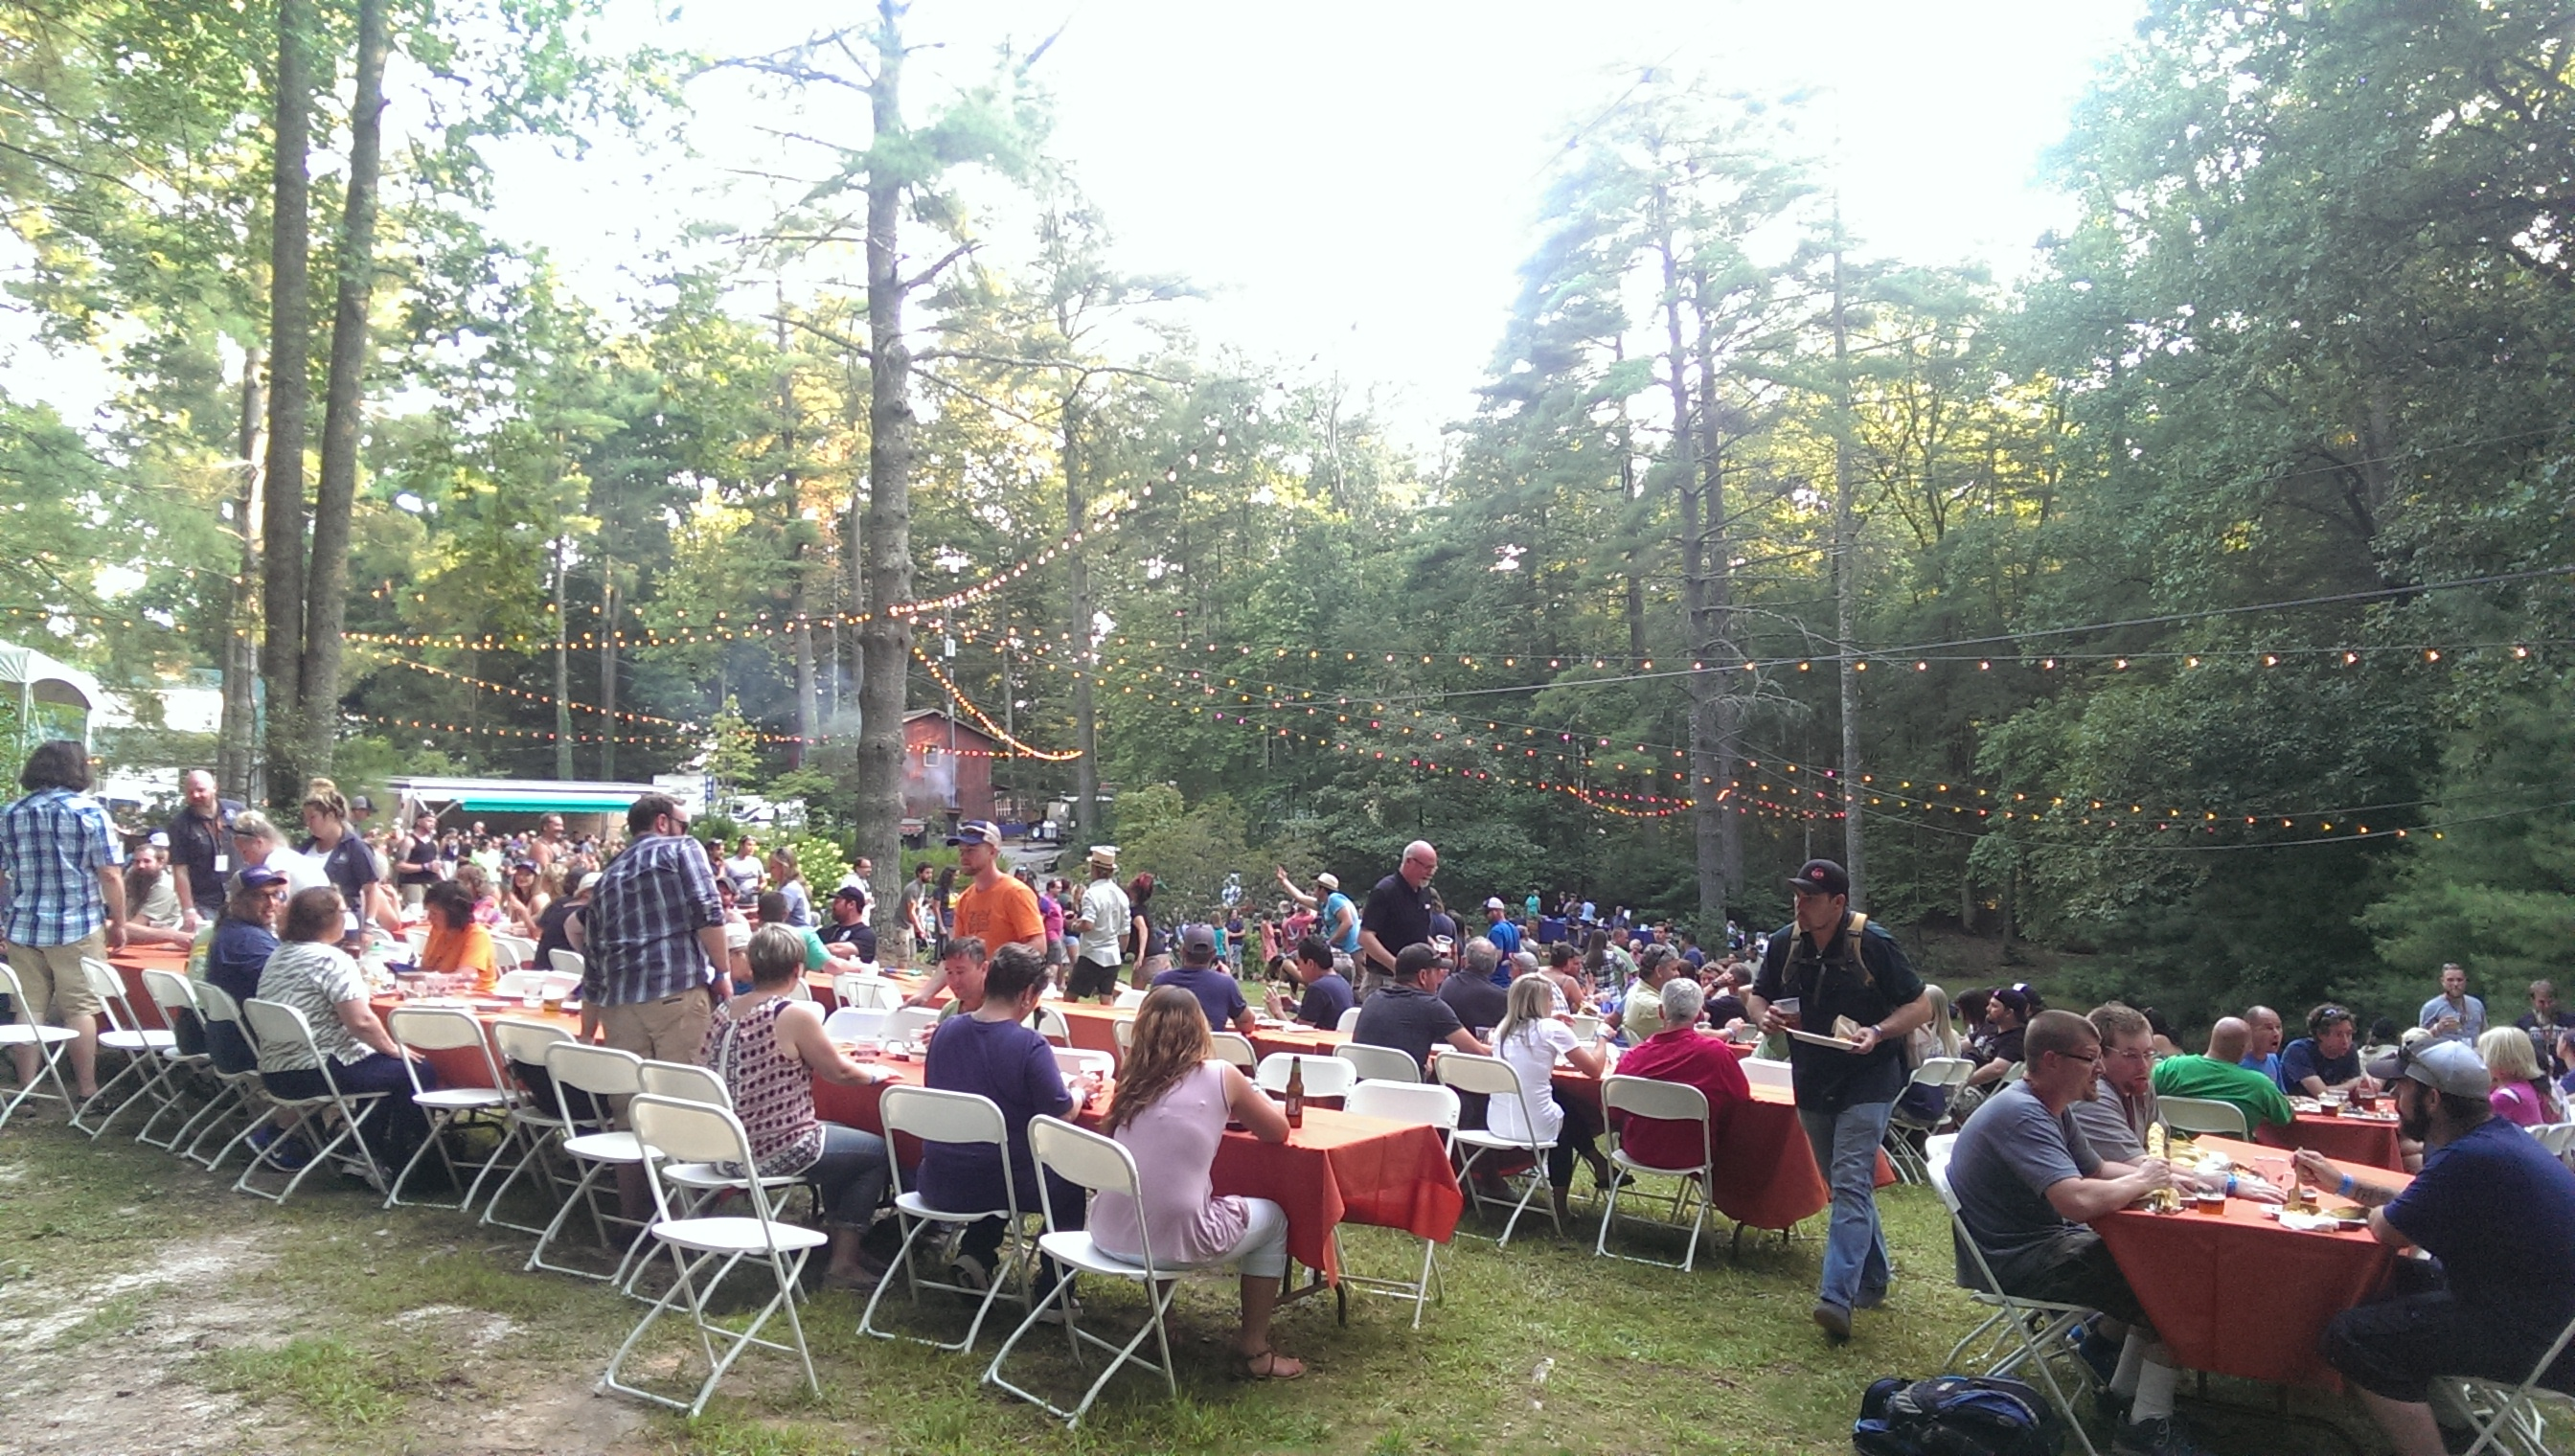 Brew-ED Beer News: Beer Camp event at Sierra Nevada's new brewery in Mills River 'a flawlessly executed first event'